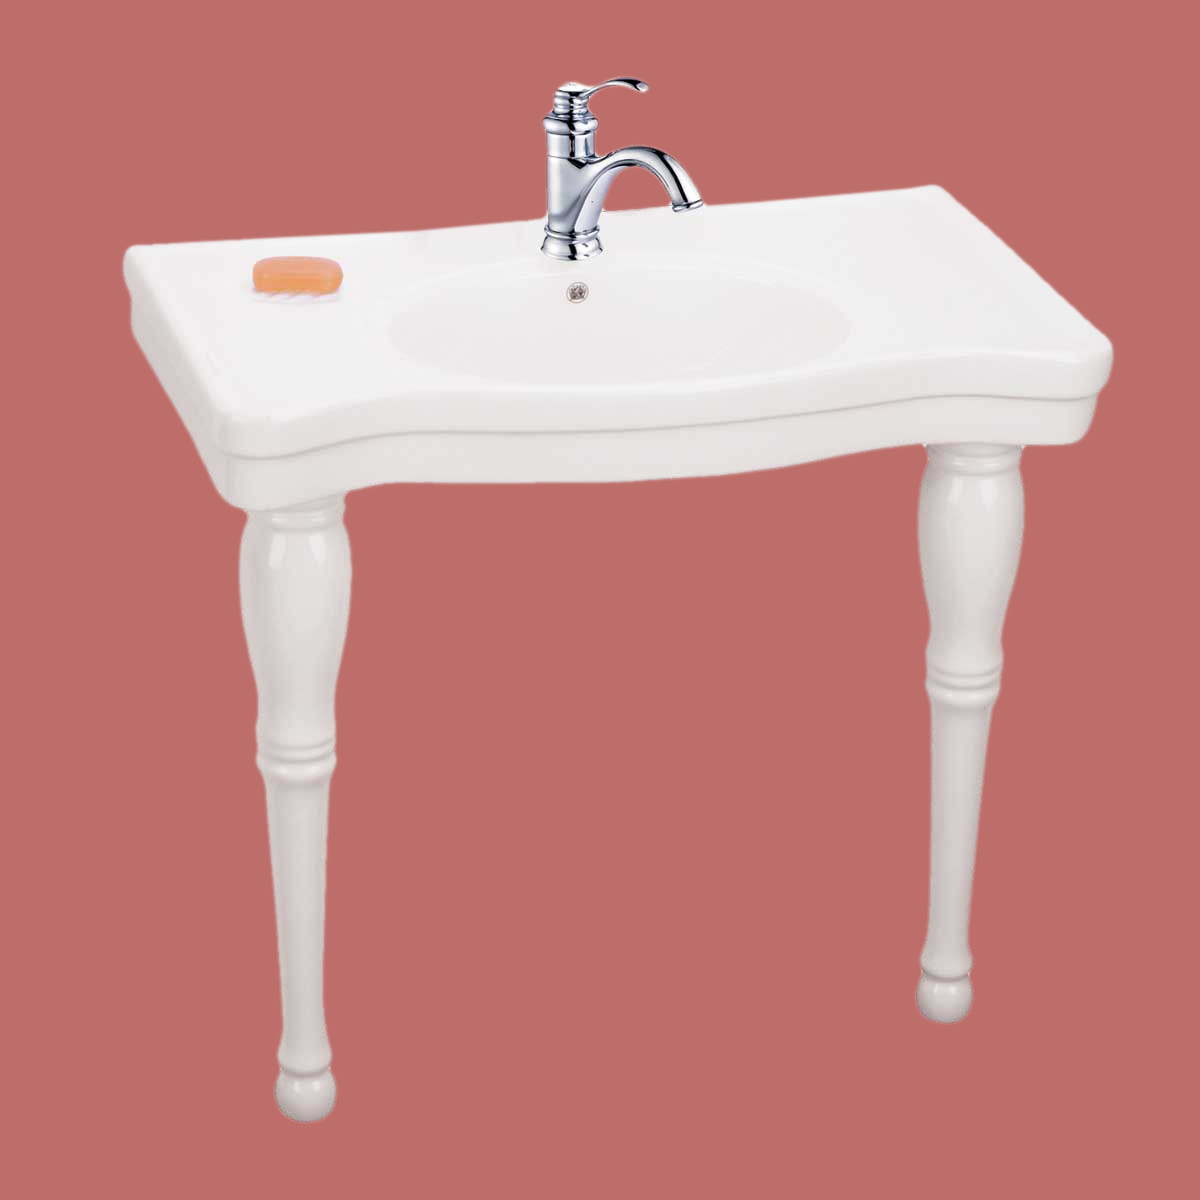 Deluxe Bathroom Console Sink White China Spingle Leg